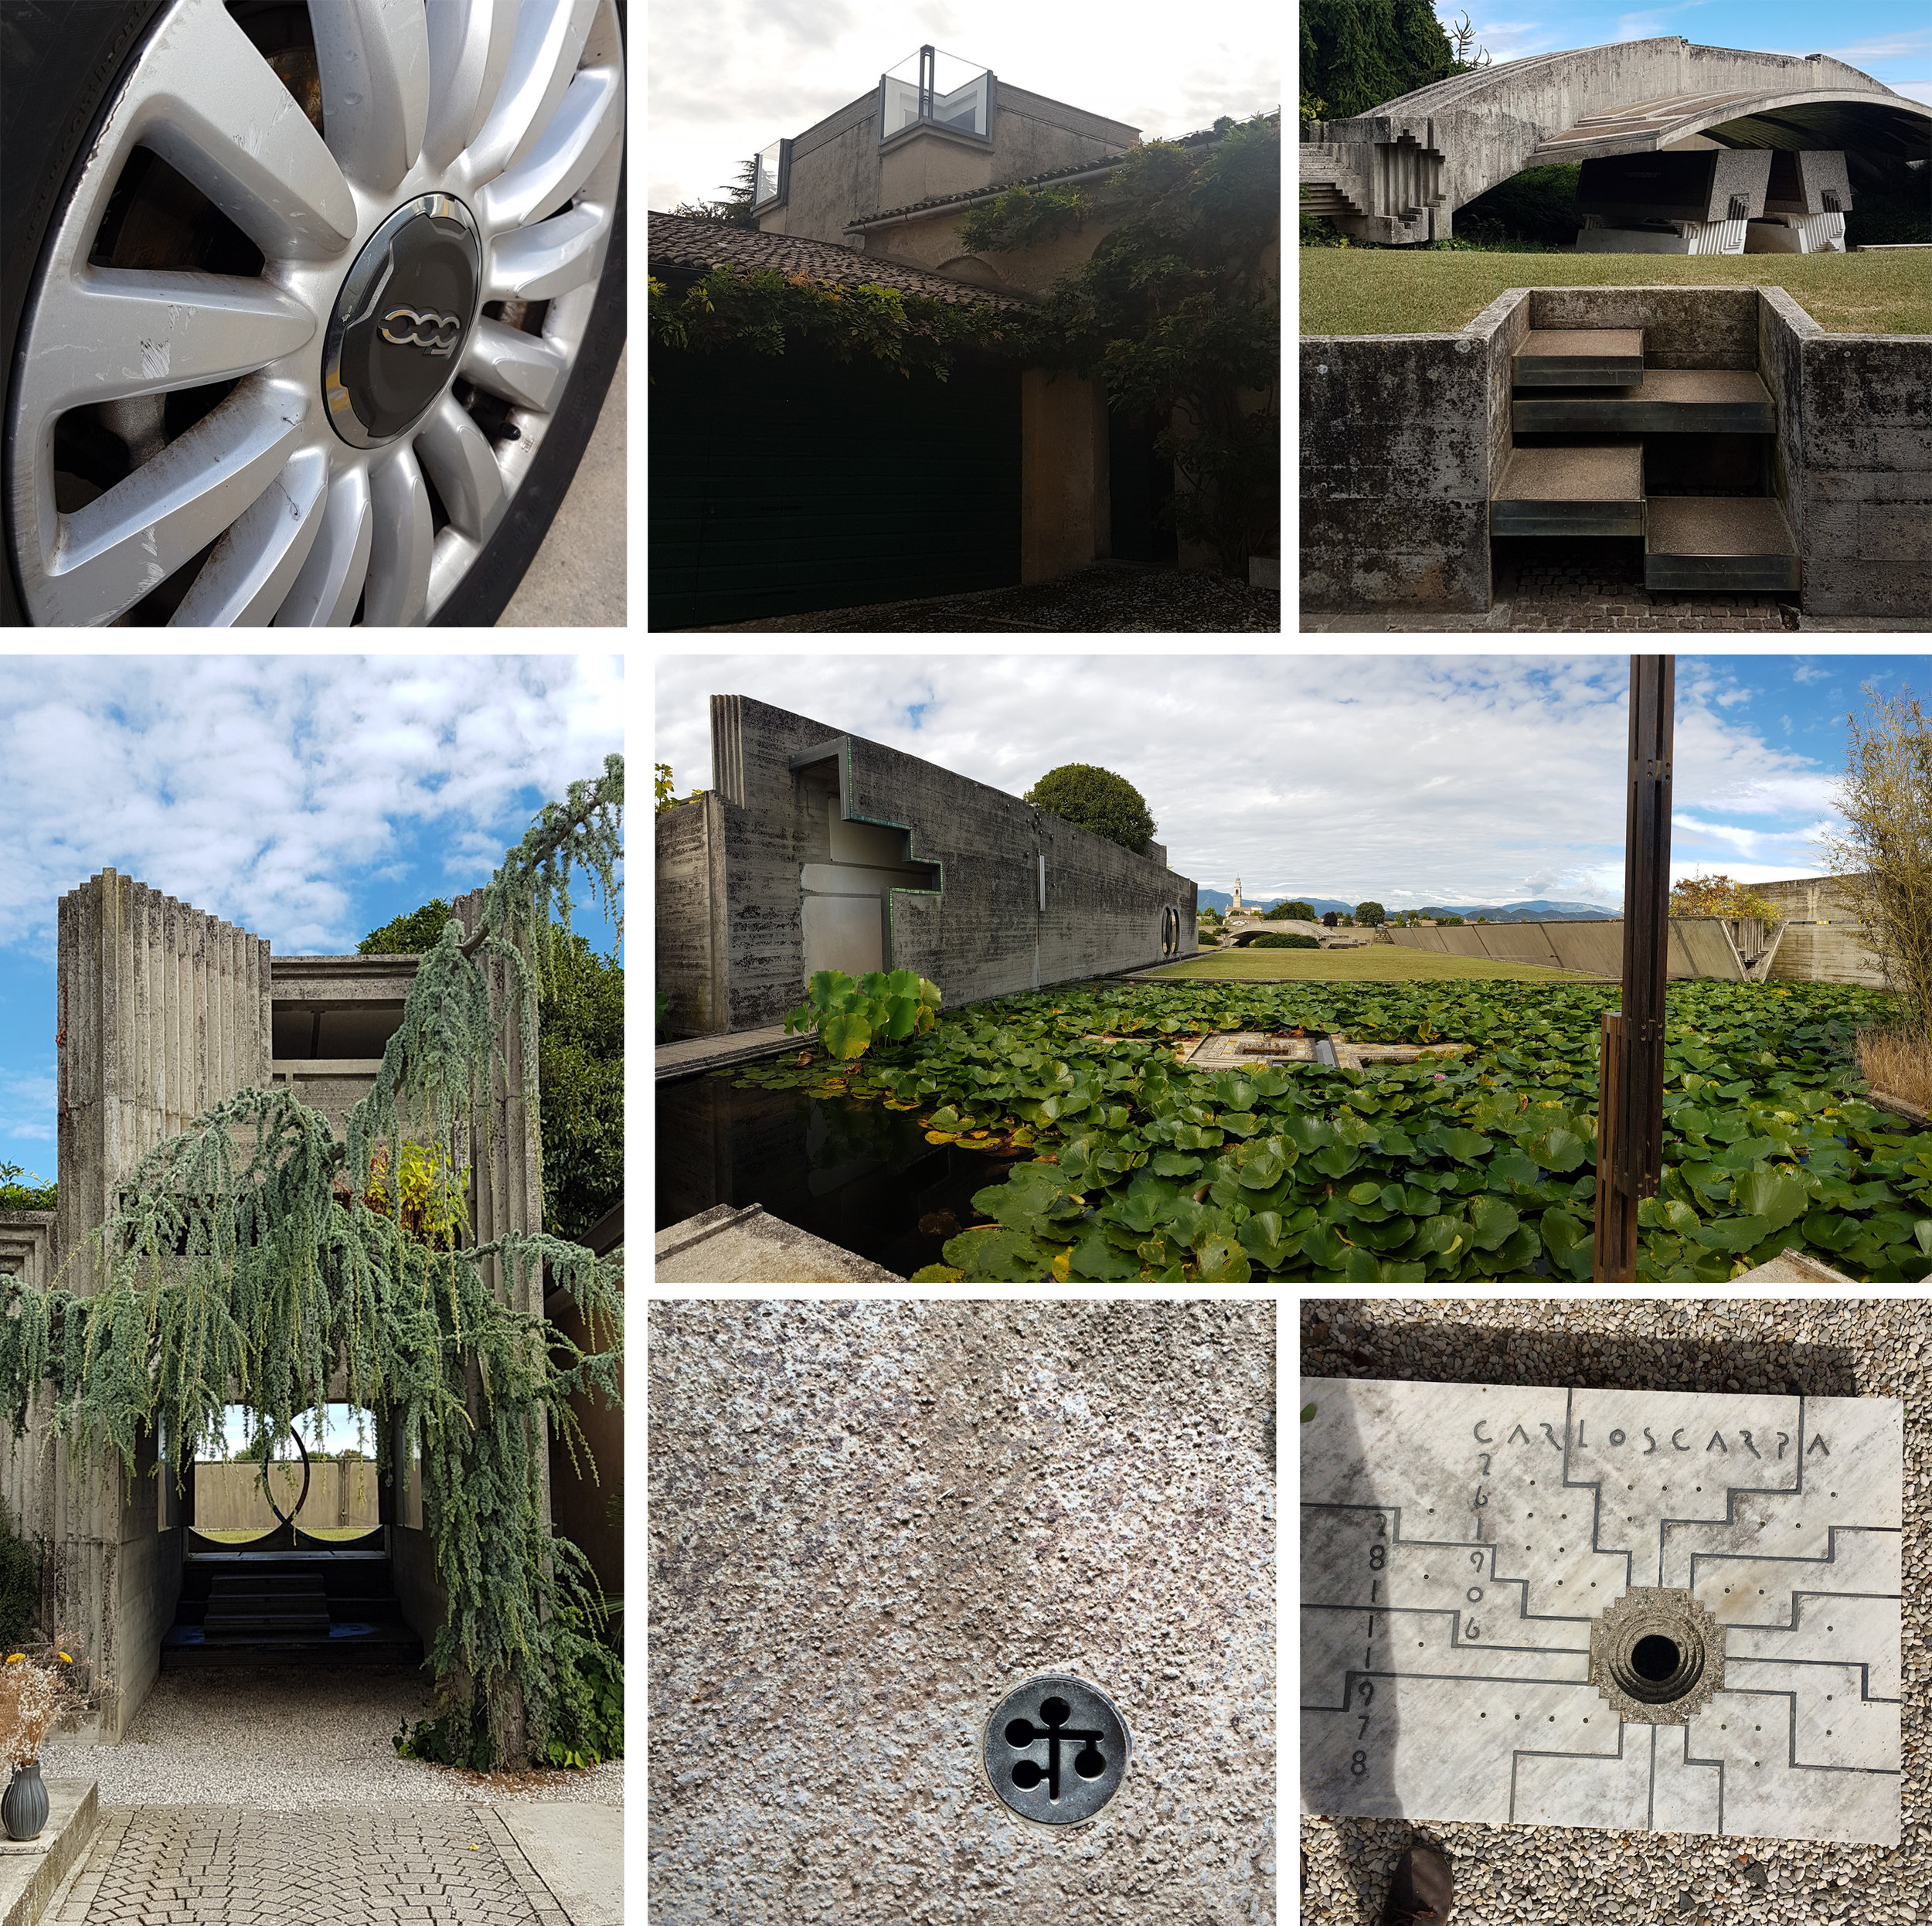 Driving to Canova Museum & Cast Gallery (Row 1), and the Brion Cemetery (Rows 2 & 3)